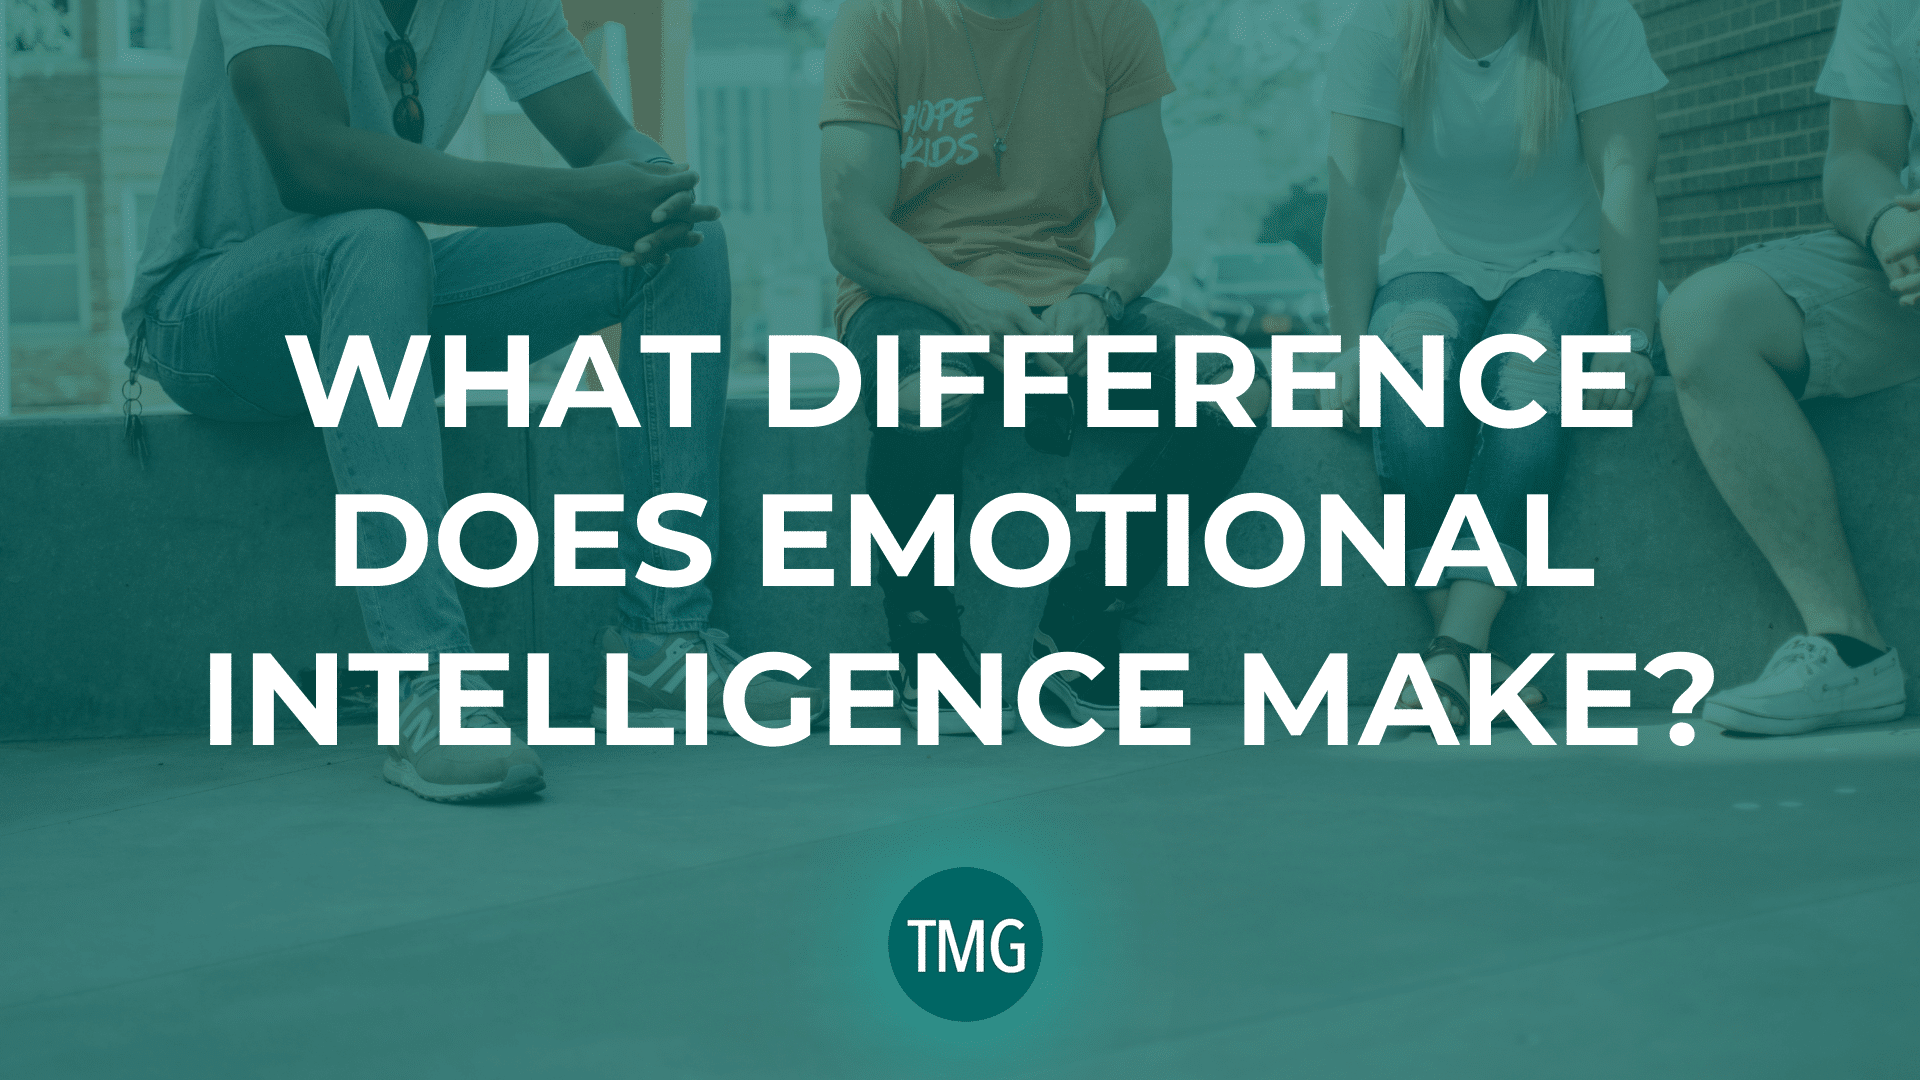 what-difference-does-emotional-intelligence-make-header-image